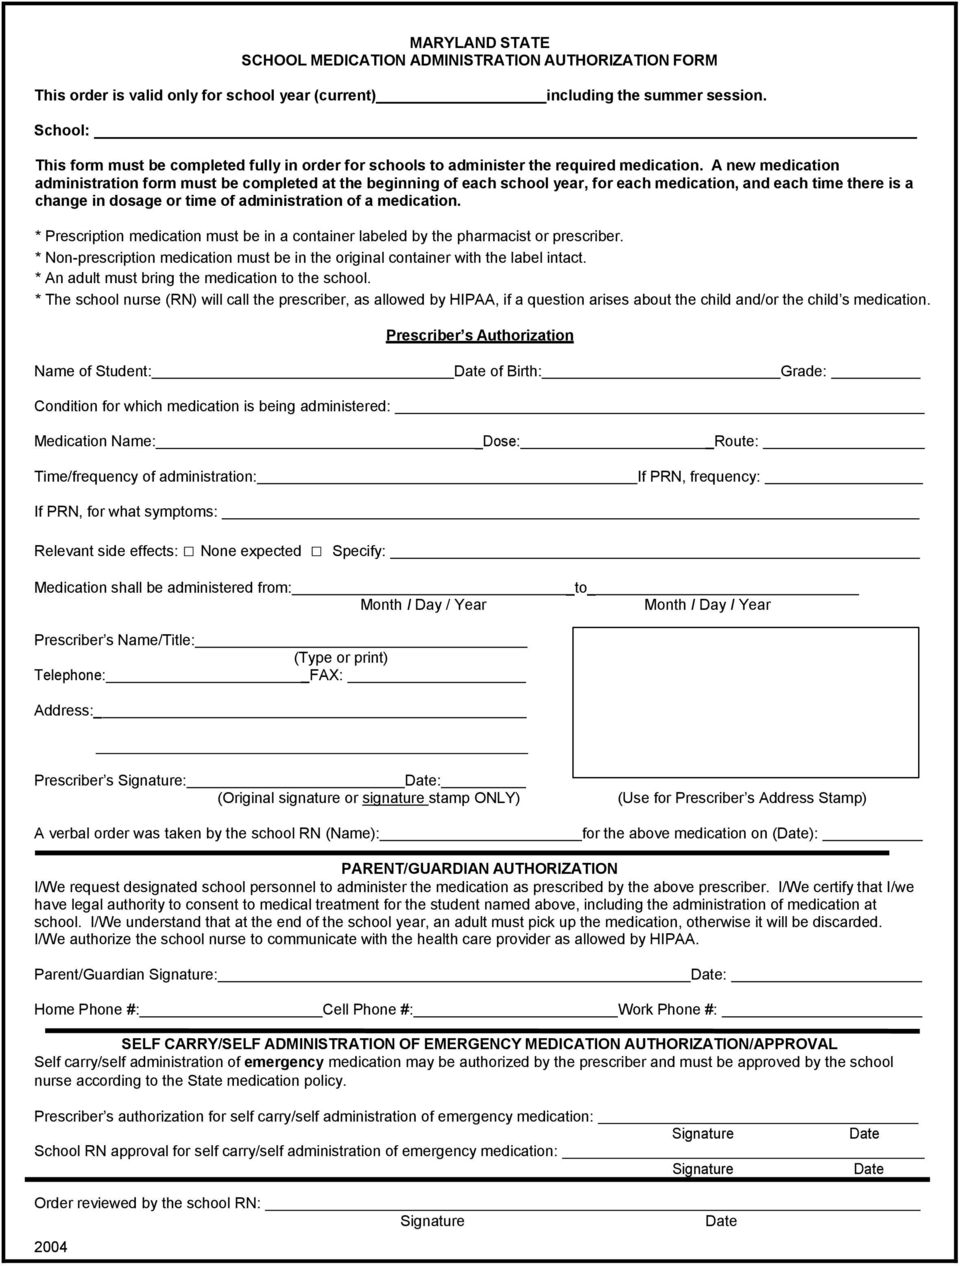 A new medication administration form must be completed at the beginning of each school year, for each medication, and each time there is a change in dosage or time of administration of a medication.